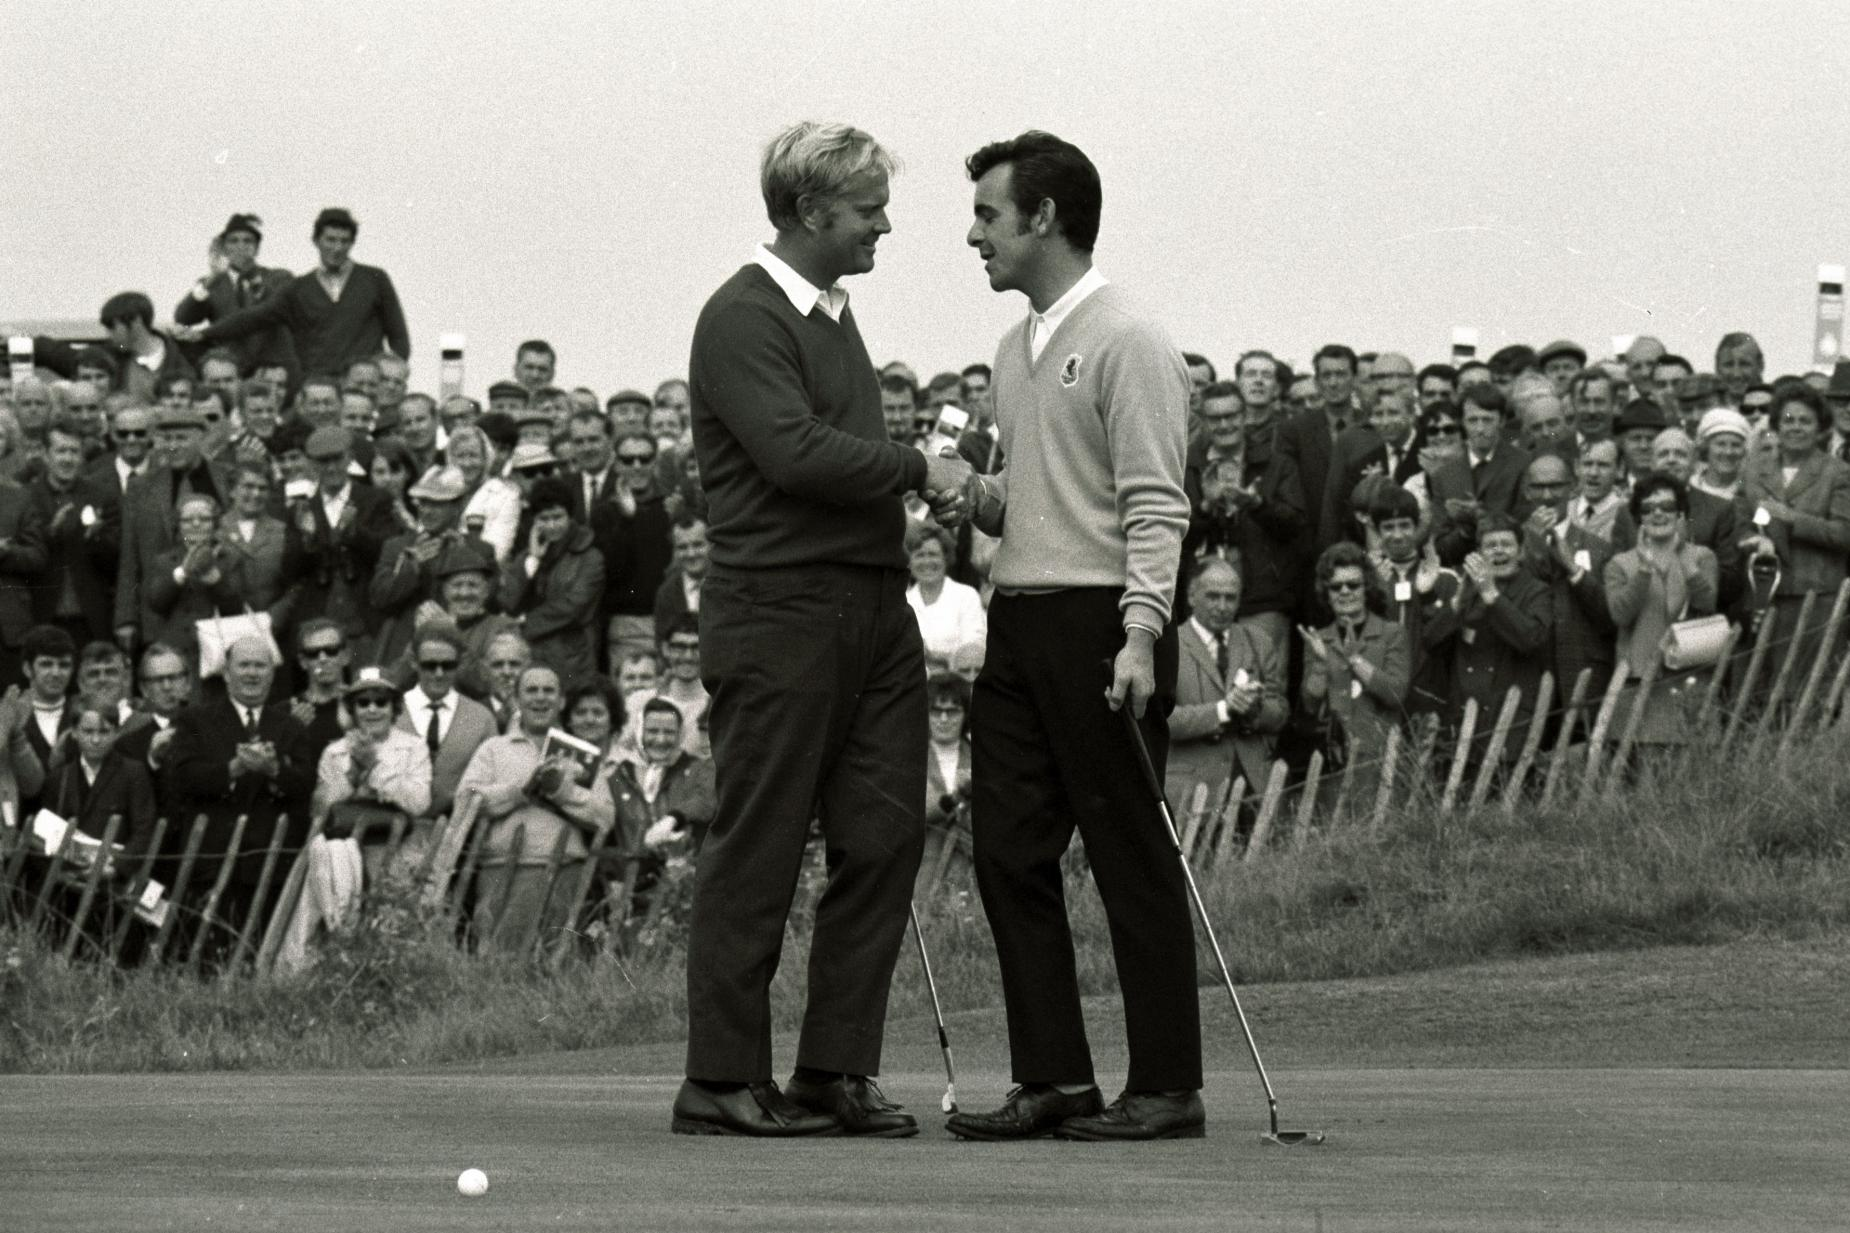 ryder-cup-moments-1969-jacklin-nicklaus-concession.jpg